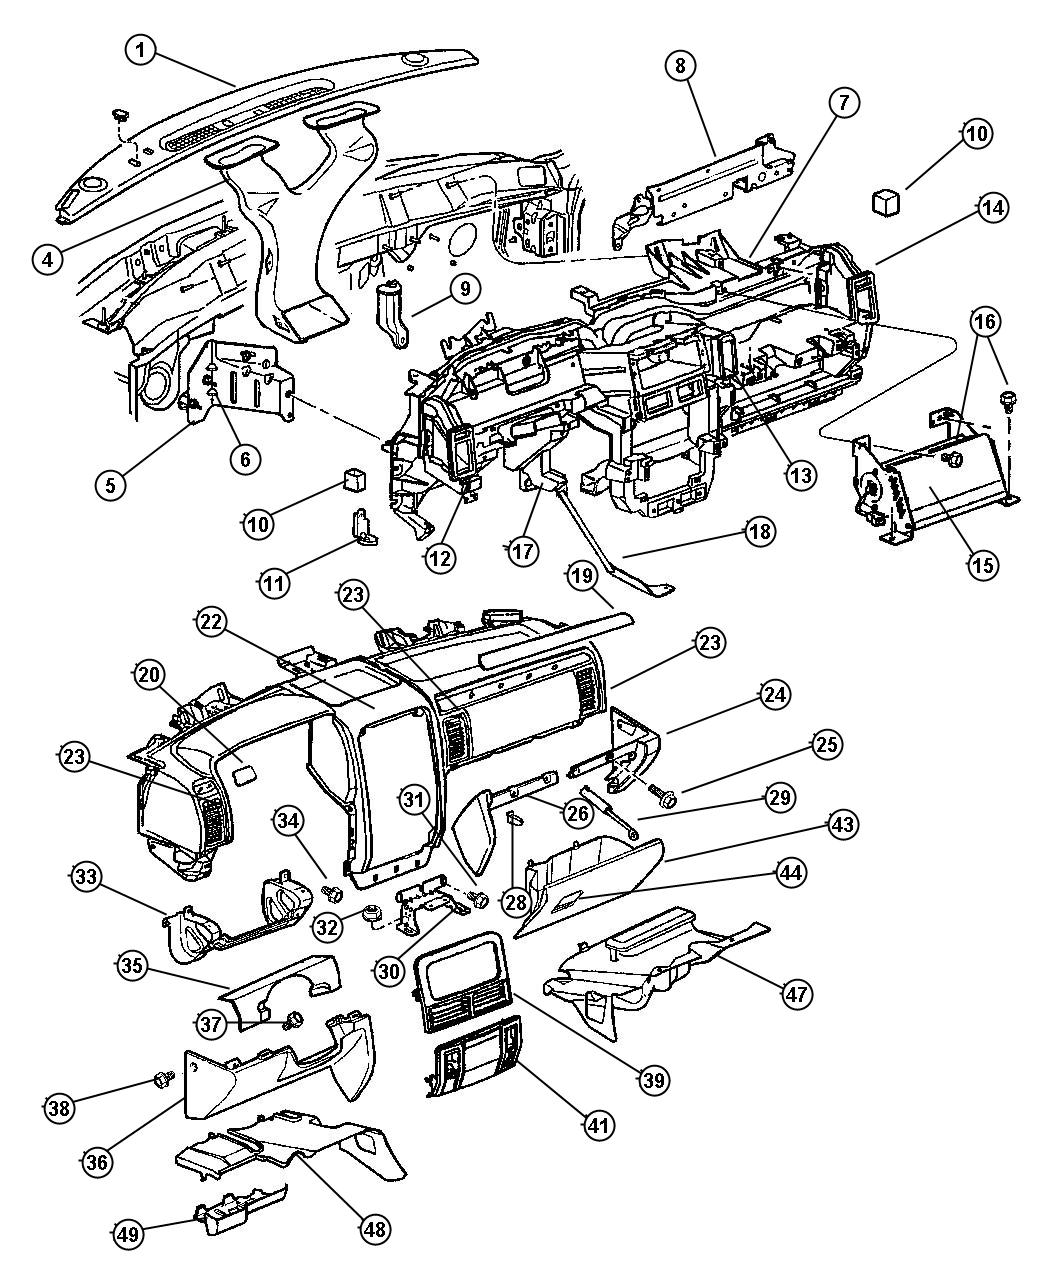 1988 Peterbilt Air Line Schematic